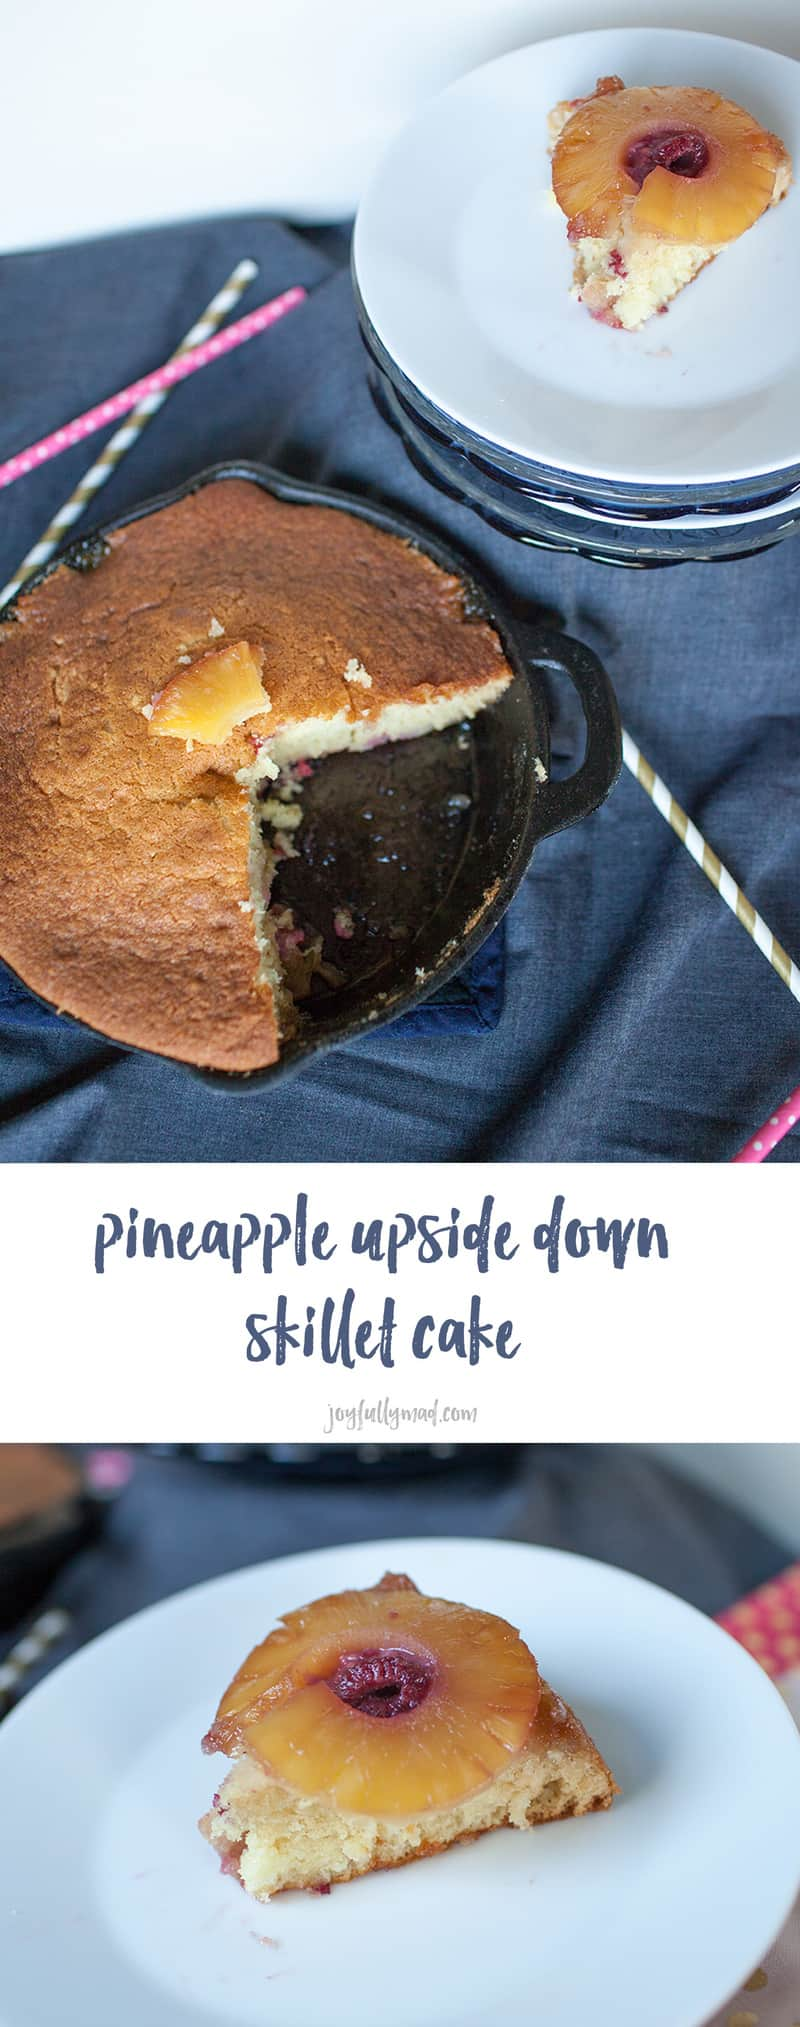 Thissuper easy dessert recipe is on that any one cake make.This classic pineapple upside down skillet cake is made in a cast iron skillet, giving it an extra rustic touch!